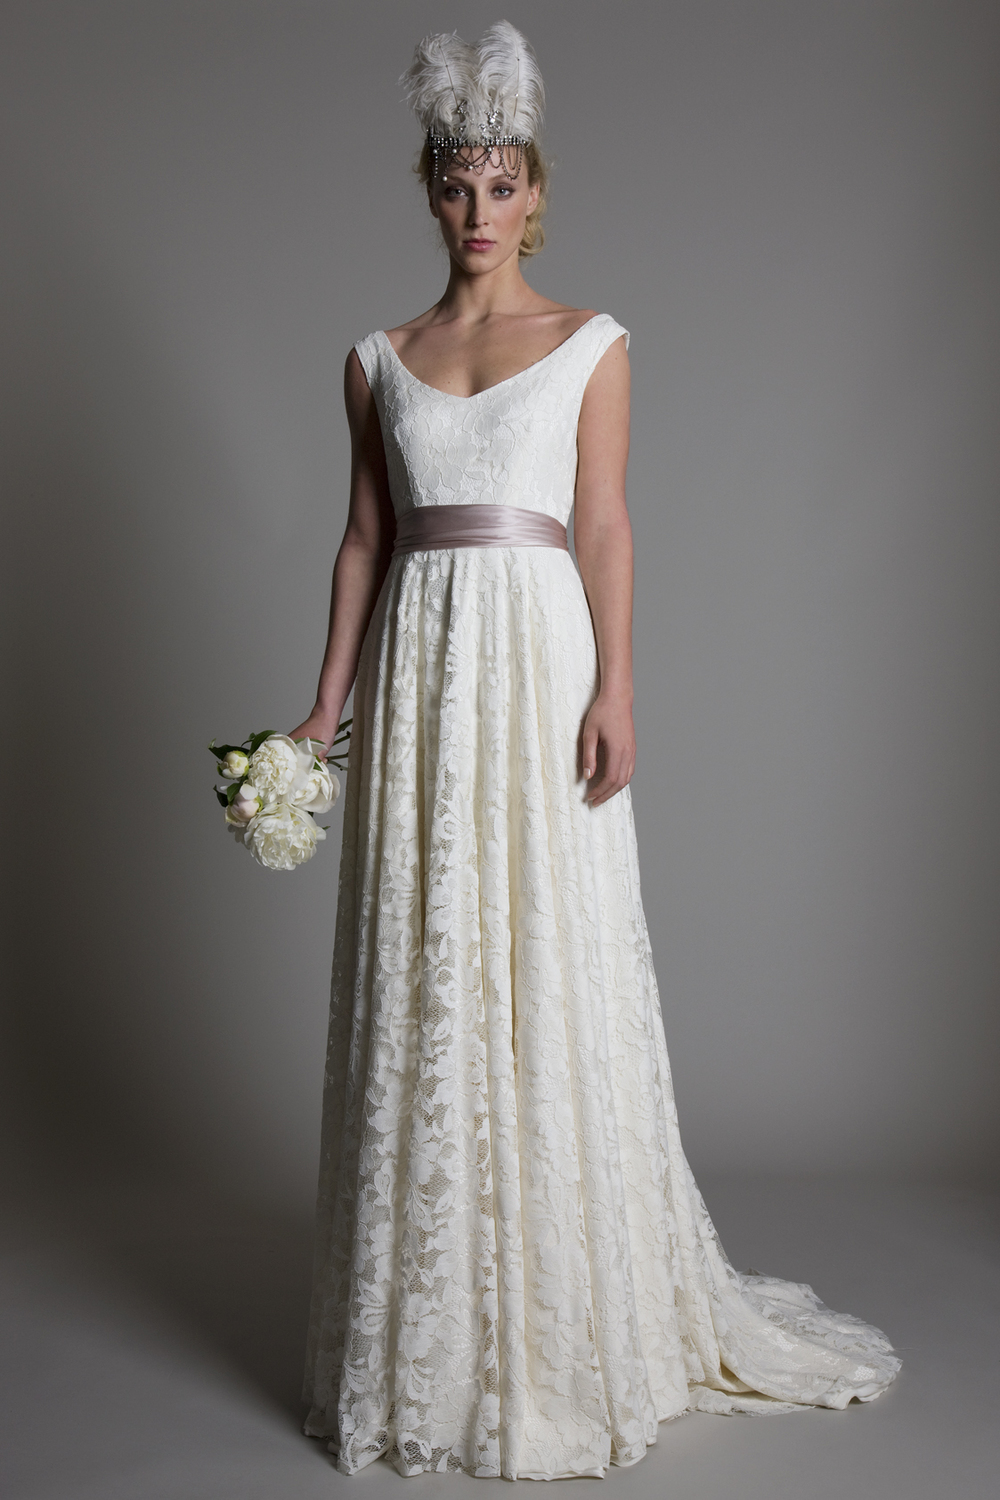 Andrea scoop neck and V back full lace A line bridal wedding dress by Halfpenny London